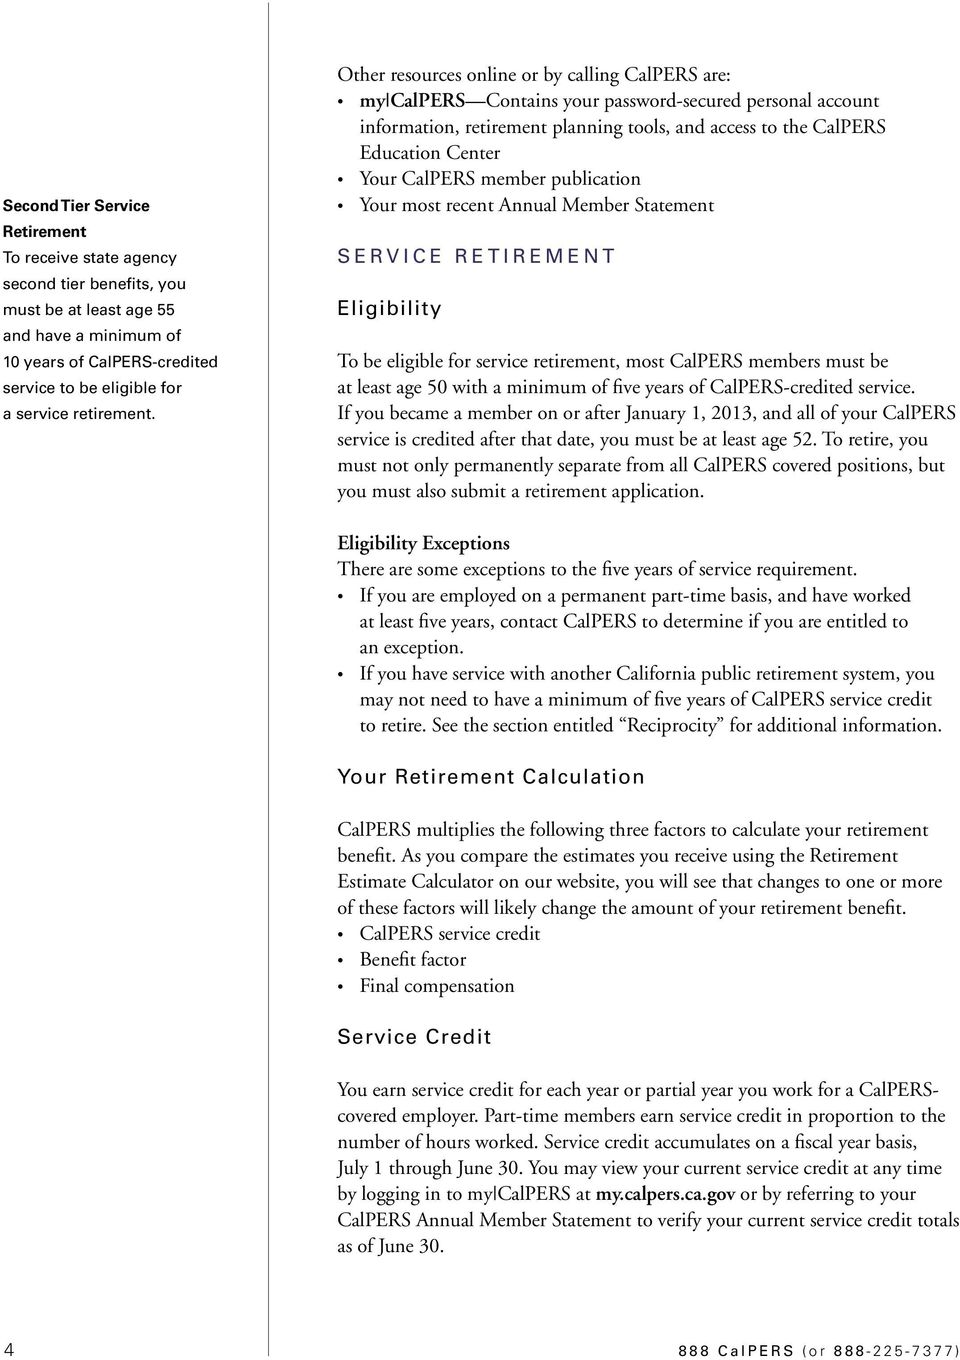 Other resources online or by calling CalPERS are: my CalPERS Contains your password-secured personal account information, retirement planning tools, and access to the CalPERS Education Center Your